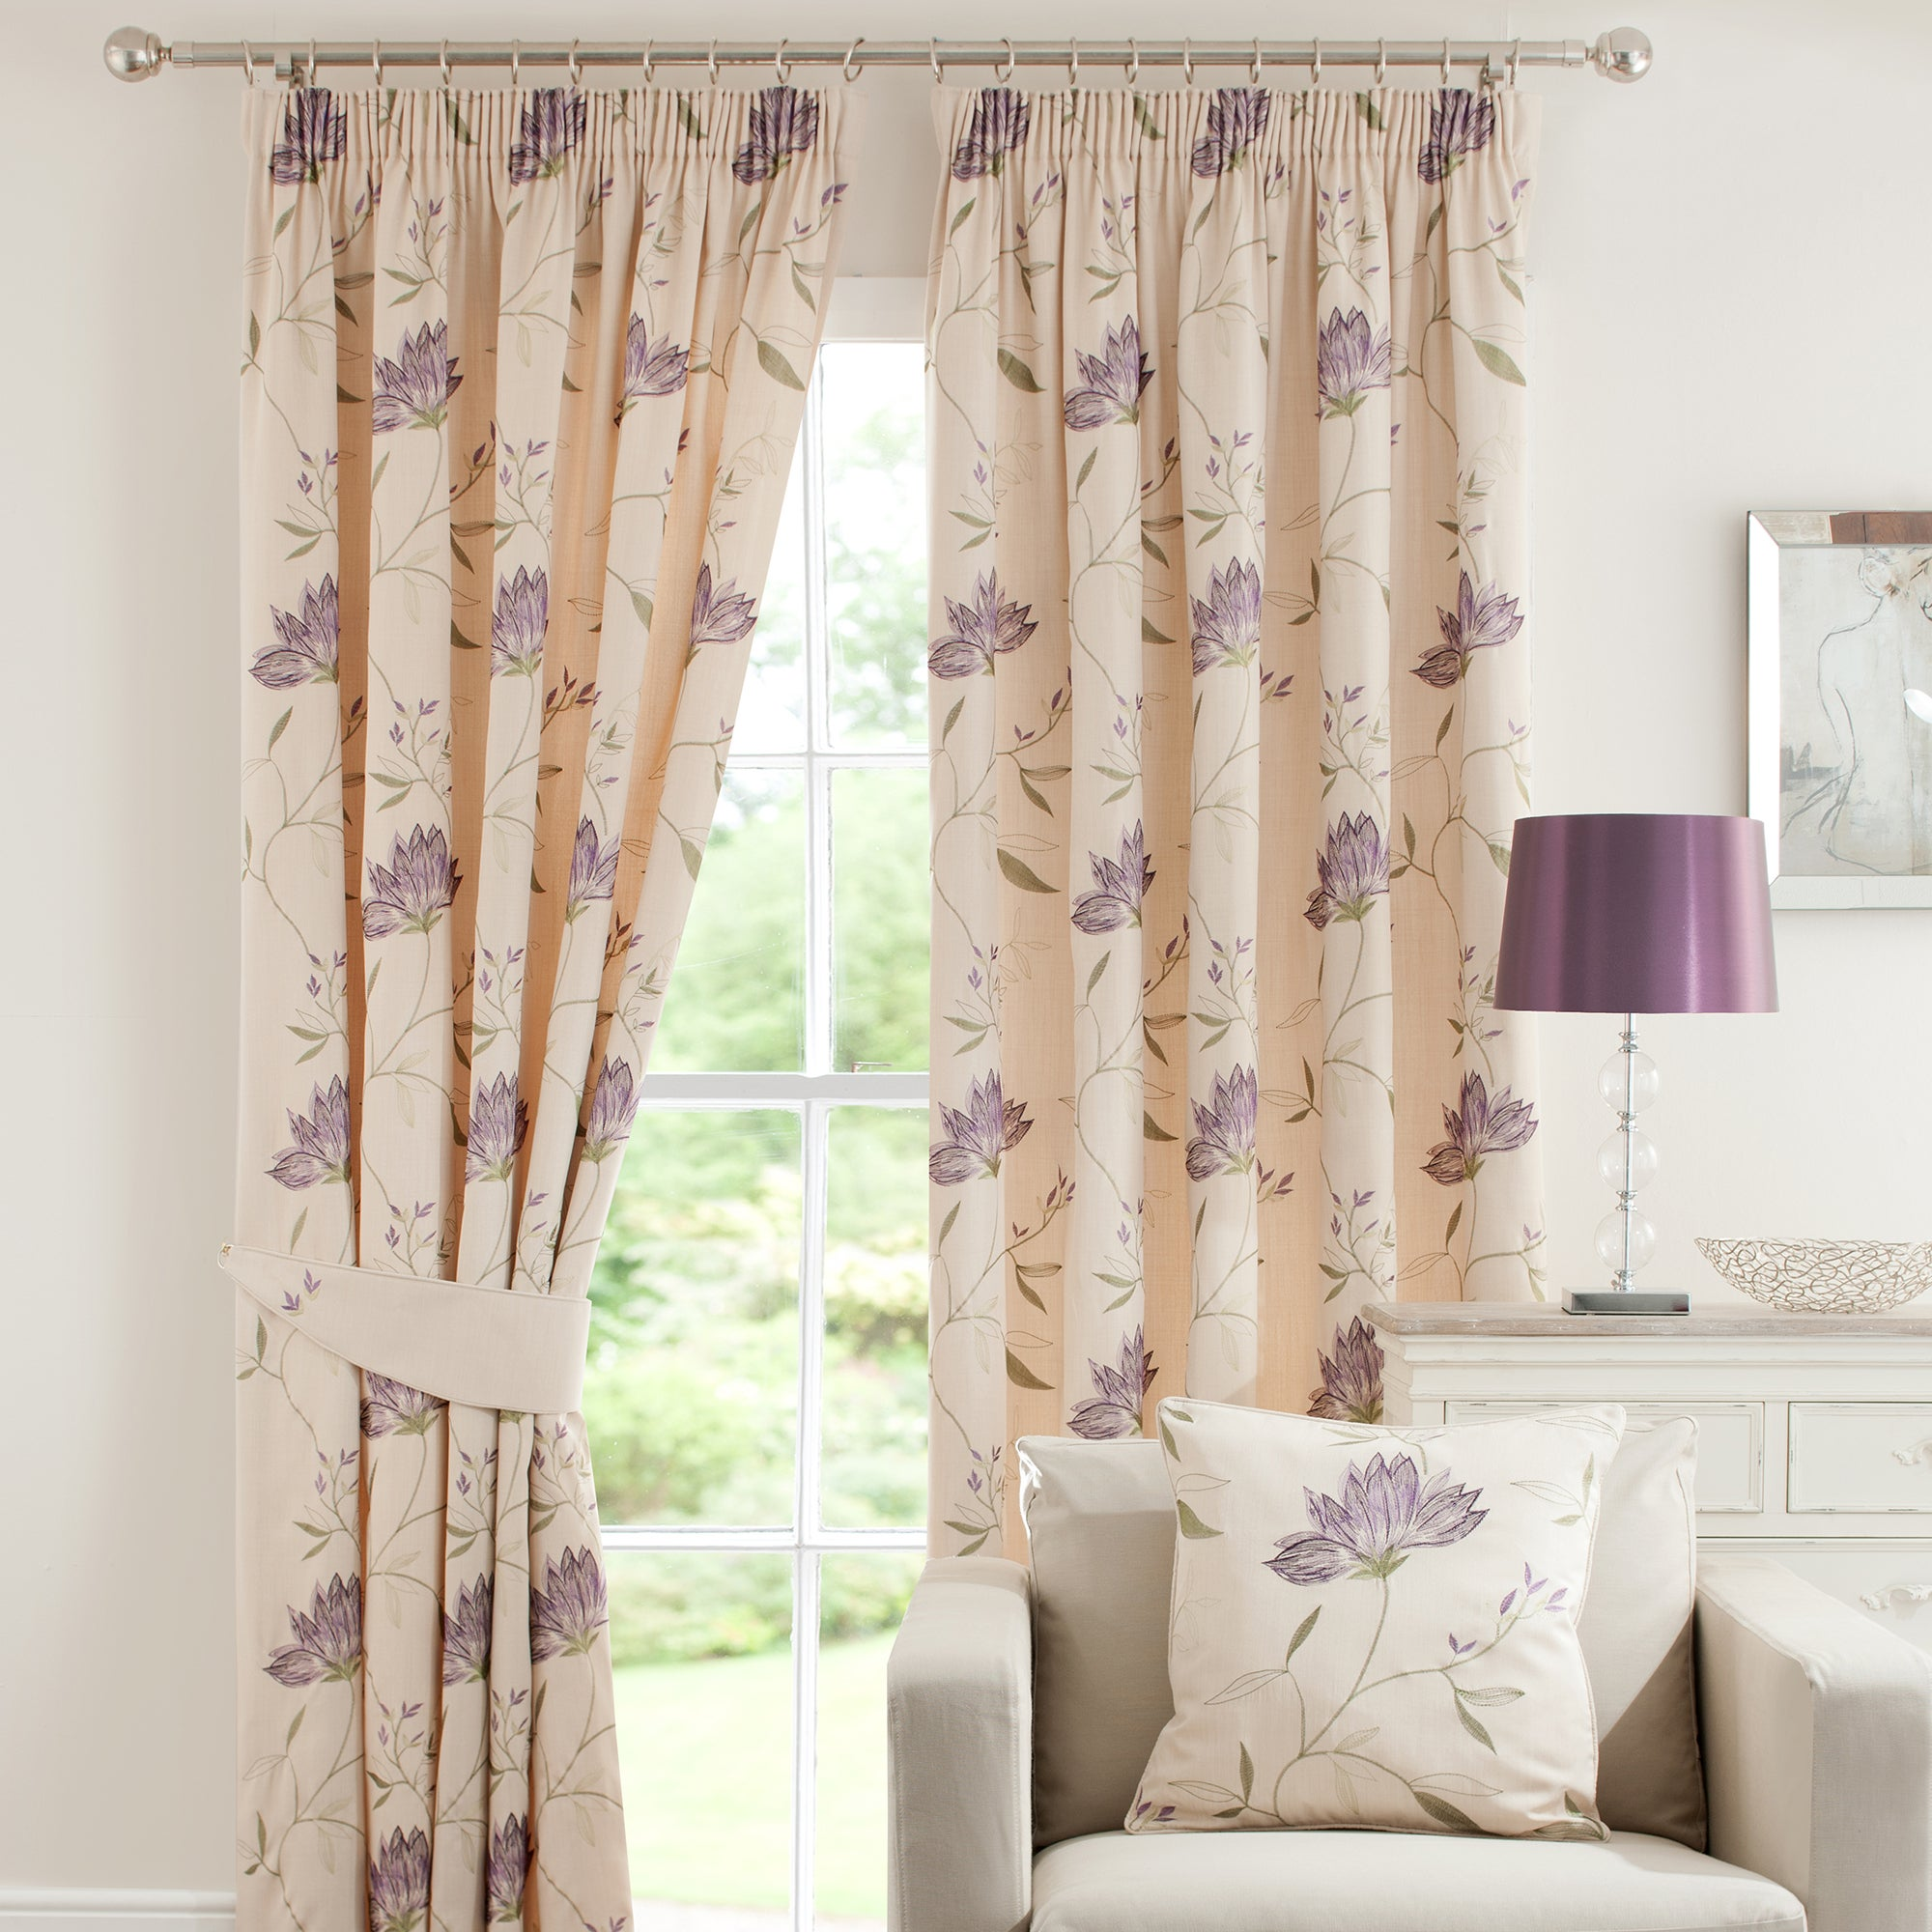 Dunelm bedding curtains blinds furniture more for Space fabric dunelm